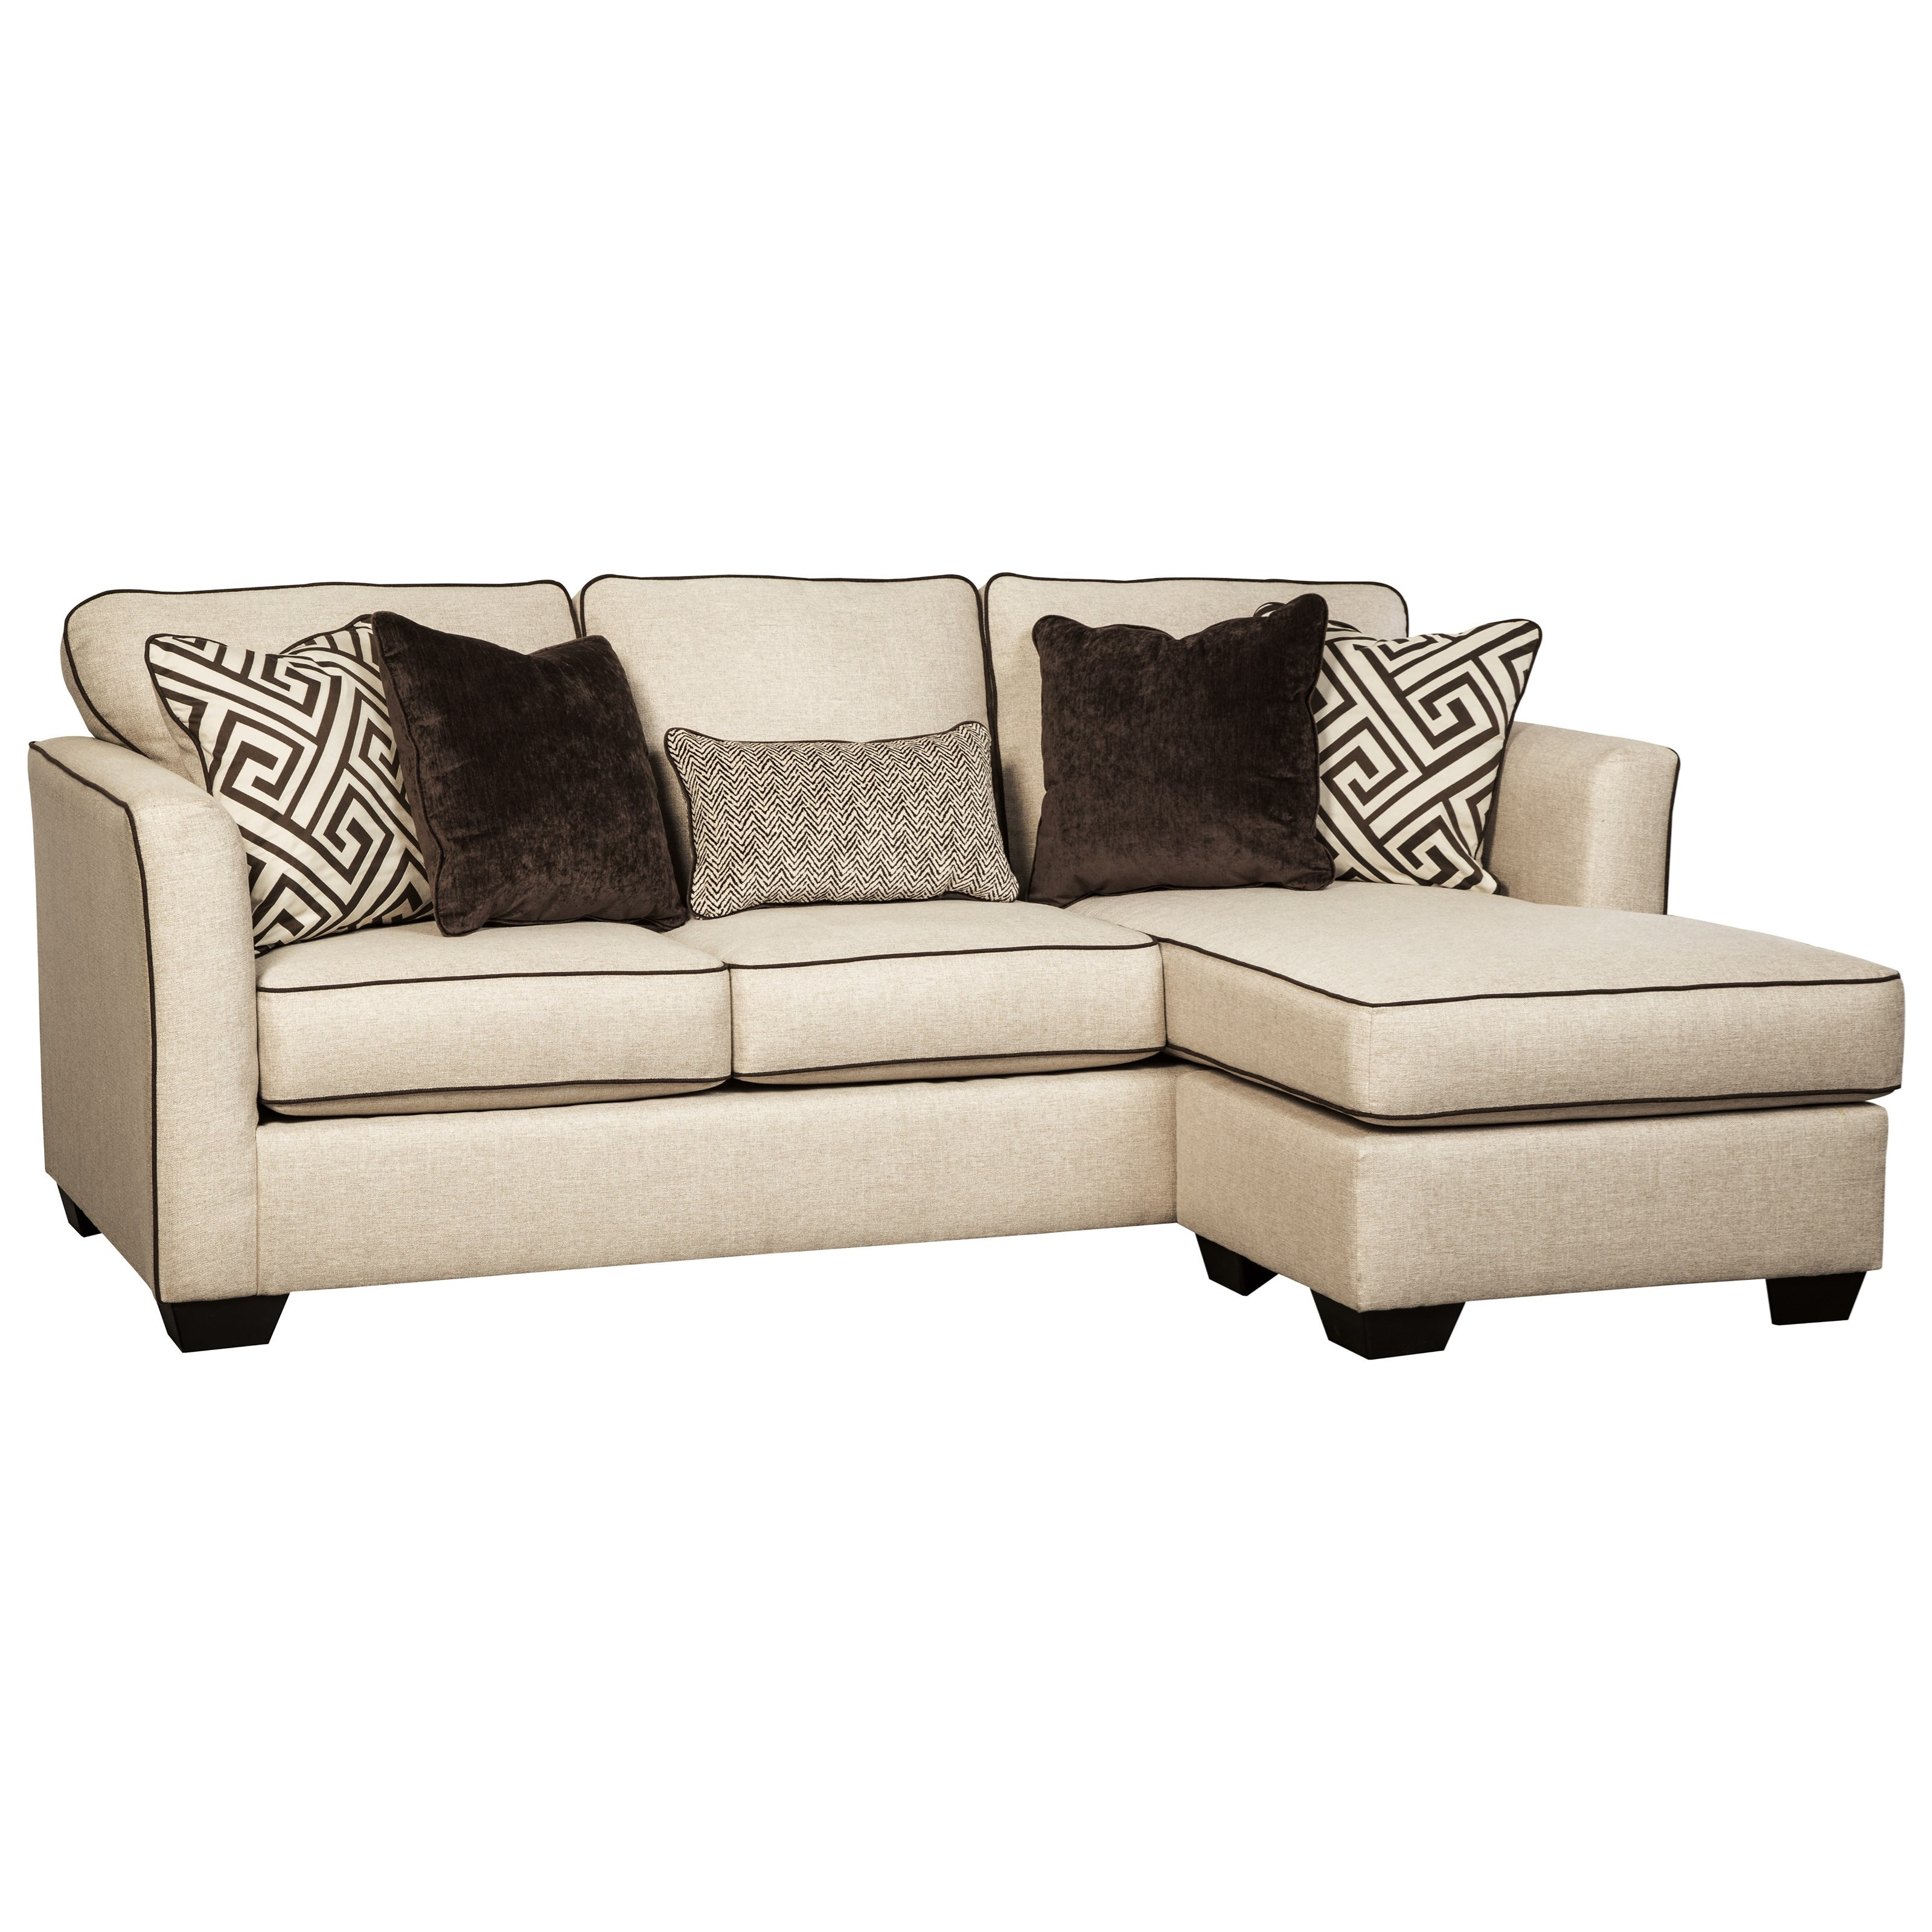 Fullsize Of Couch With Chaise